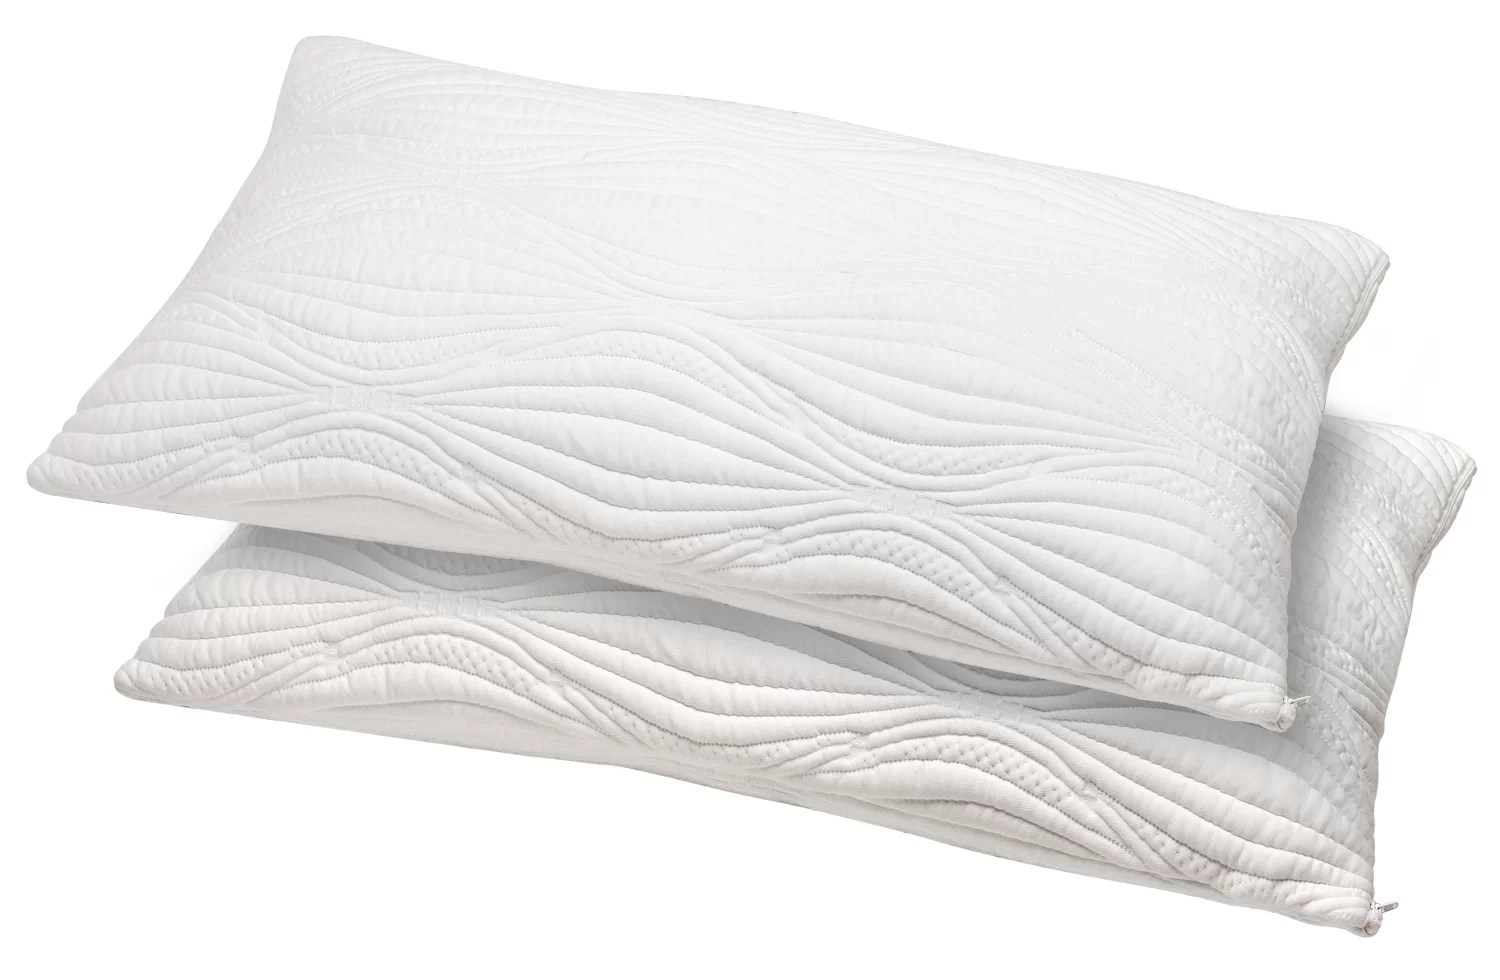 Gel Infused Memory Foam Pillow Visco Gel Memory Foam Queen Pillow